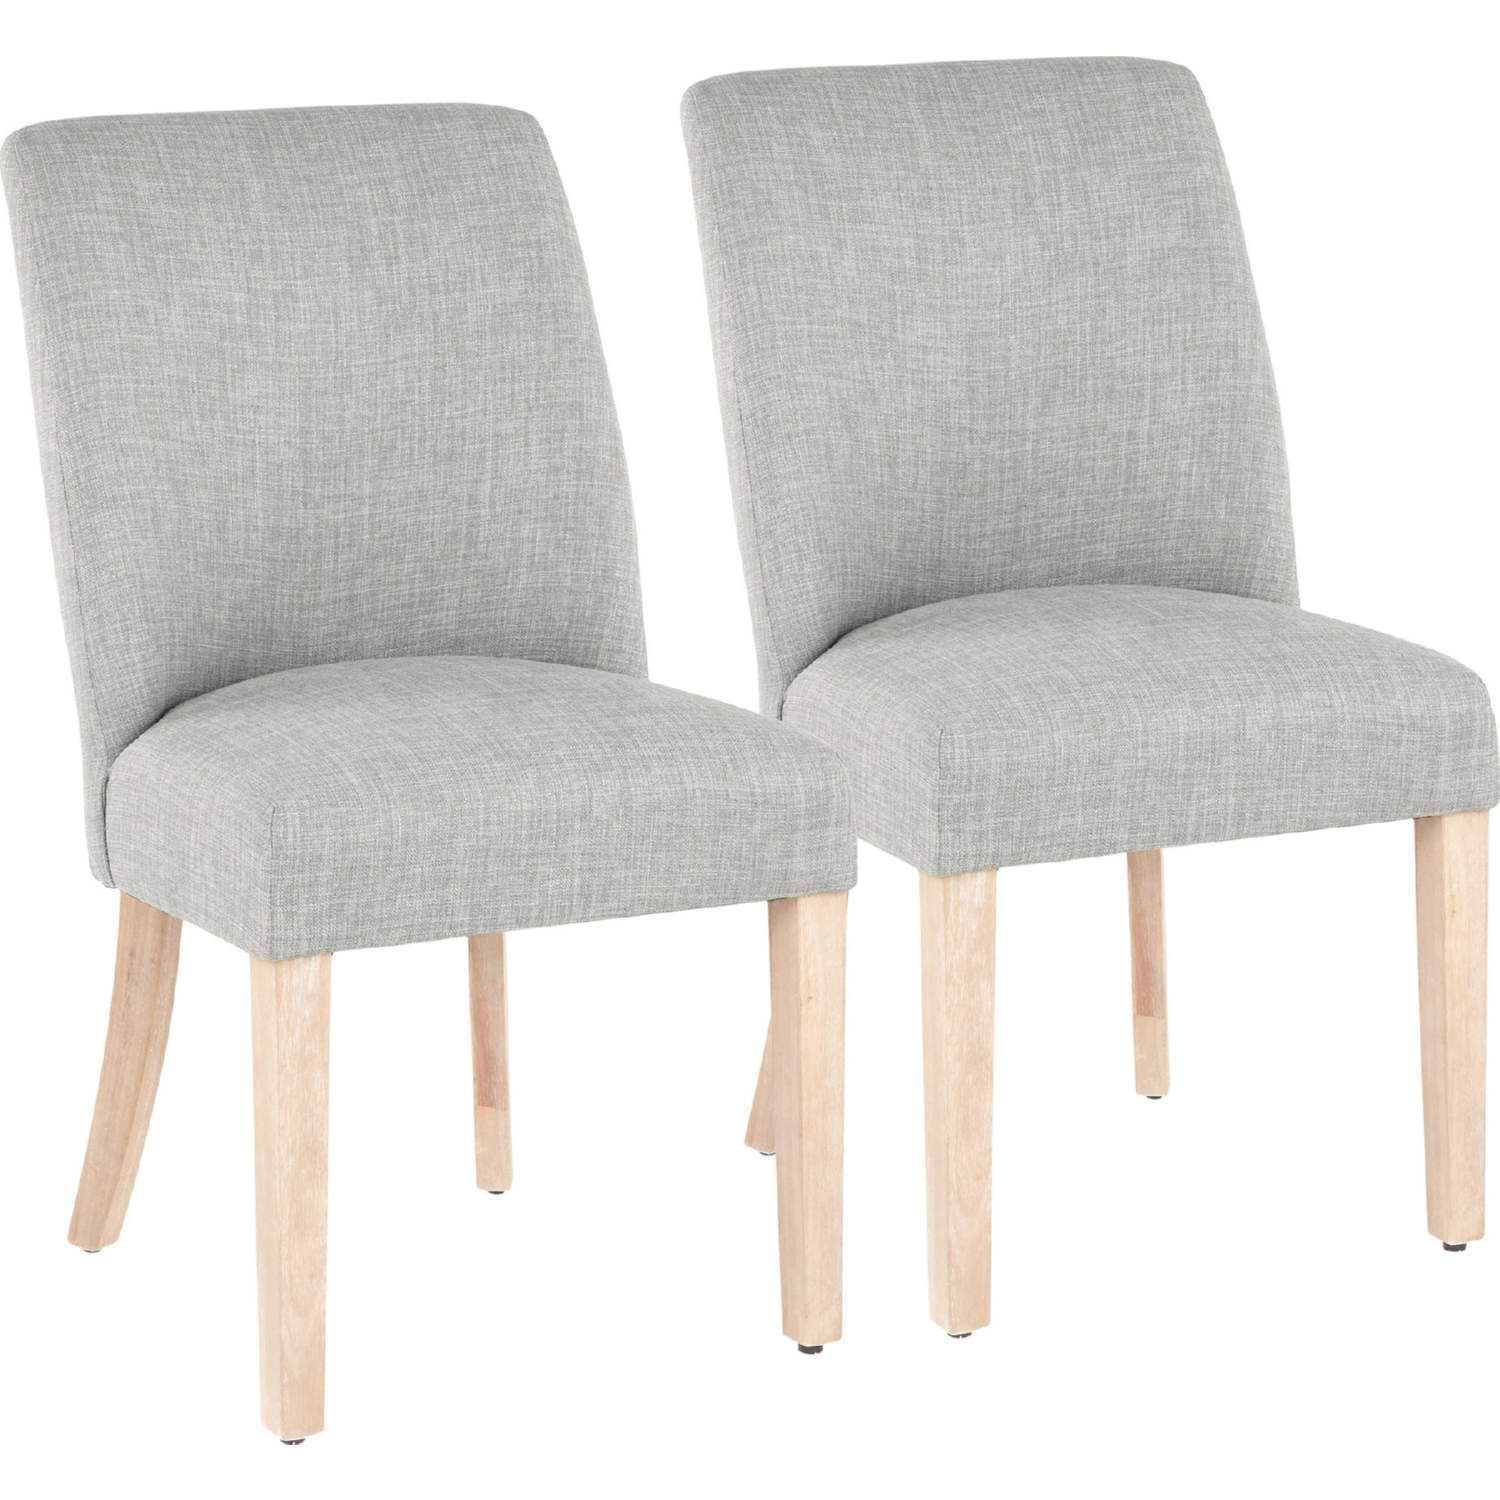 Tori Dining Chair In White Washed Wood Legs Green Grey Fabric Set Of 2 By Lumisource